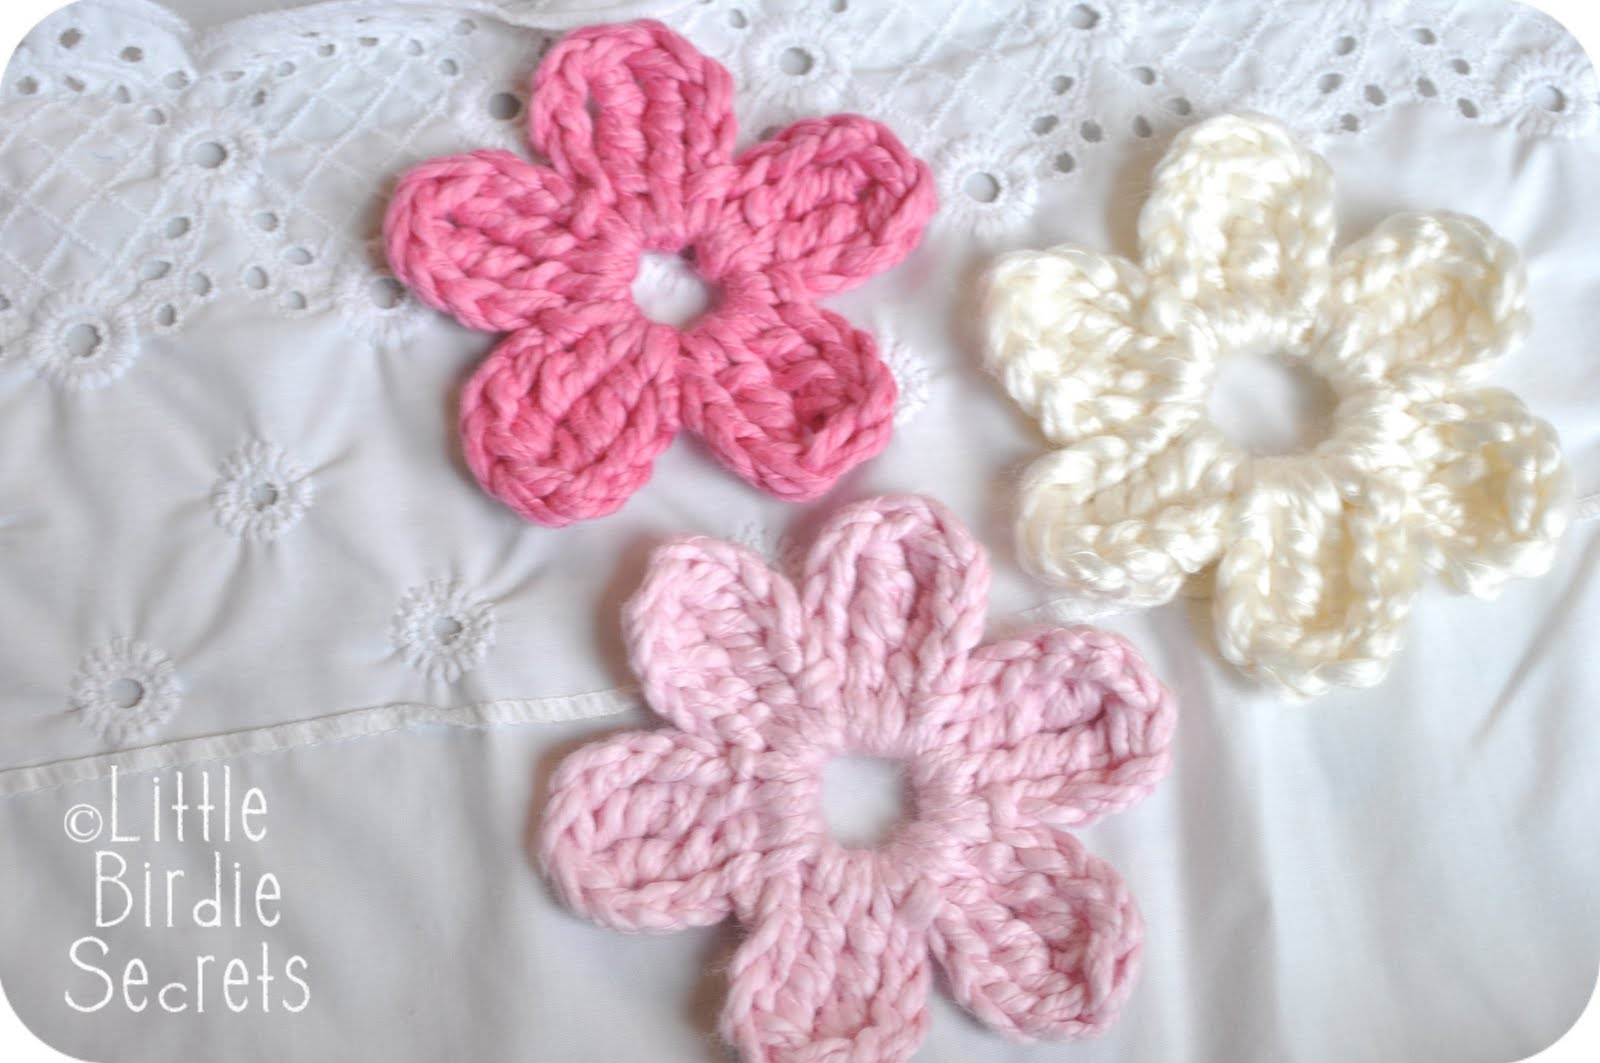 Patterns To Crochet : baby hat and bootie patterns in the shop {plus a free flower pattern ...